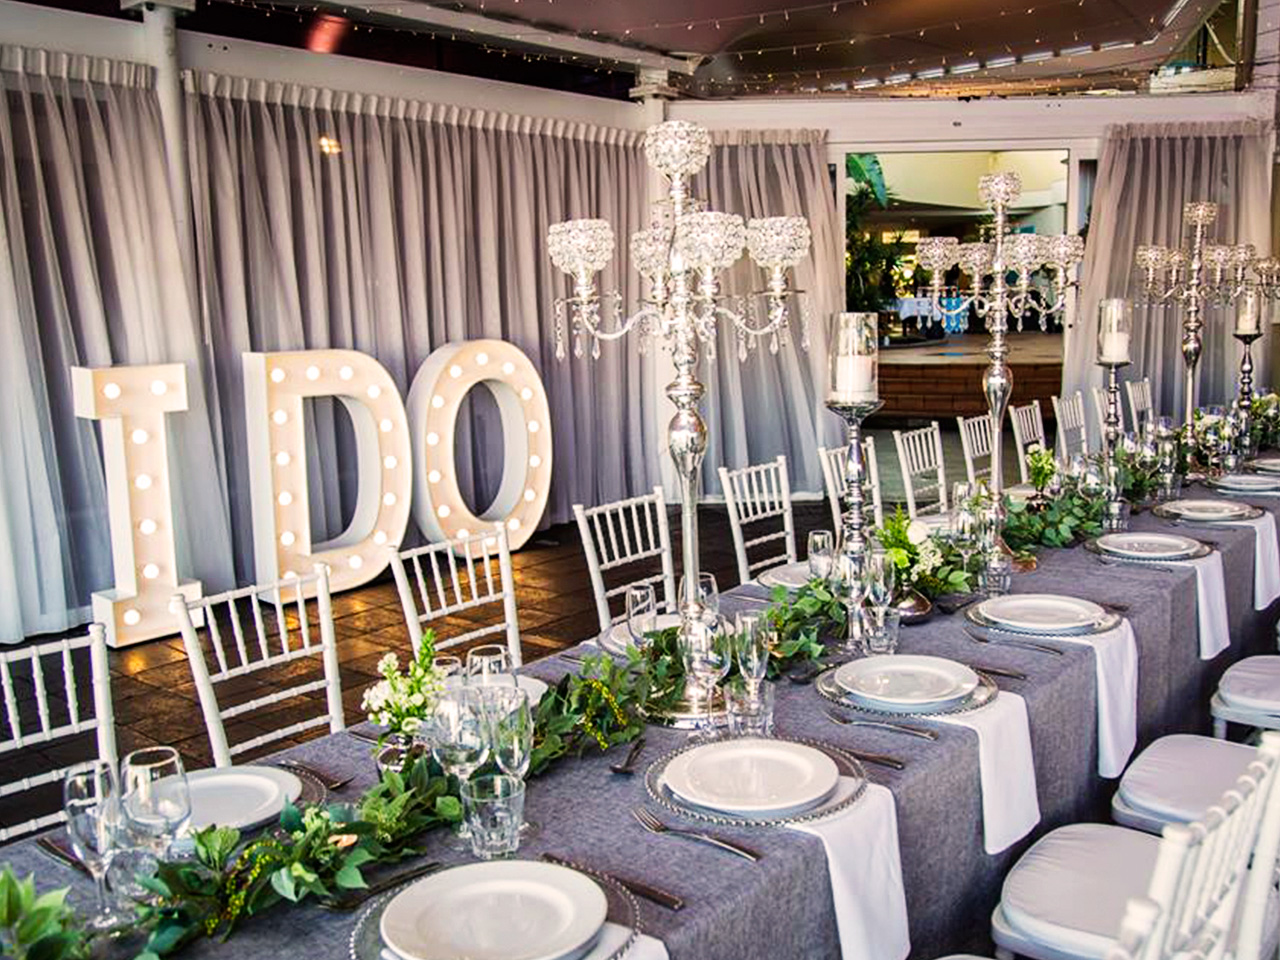 Chairs And A Long Table Setup With Green Leafy Centerpieces And 'I Do' Standee Inside The Function Room